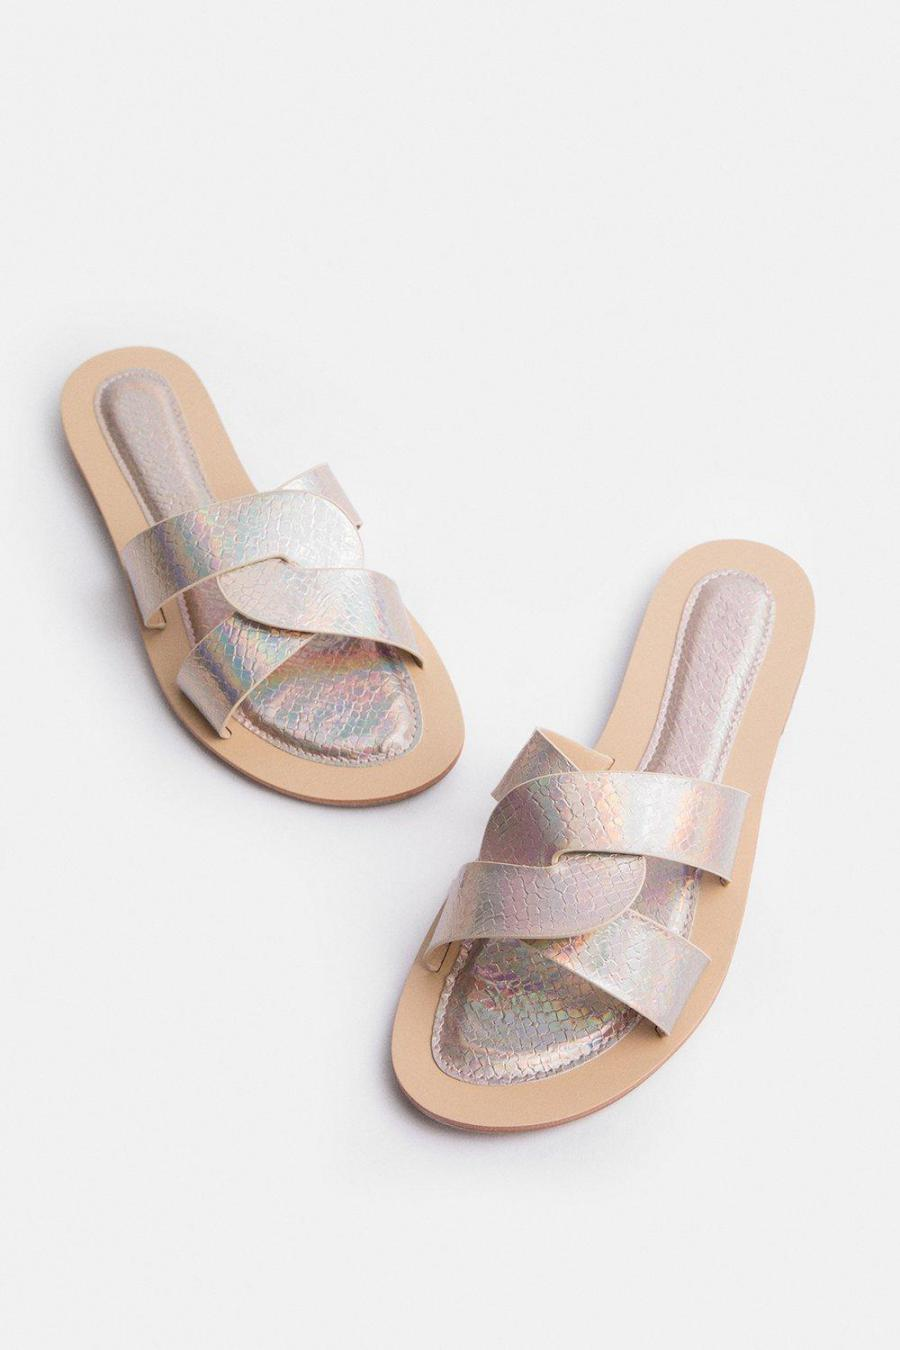 Coast Sandals | Womens Holographic Twist Flat Sandal Gold